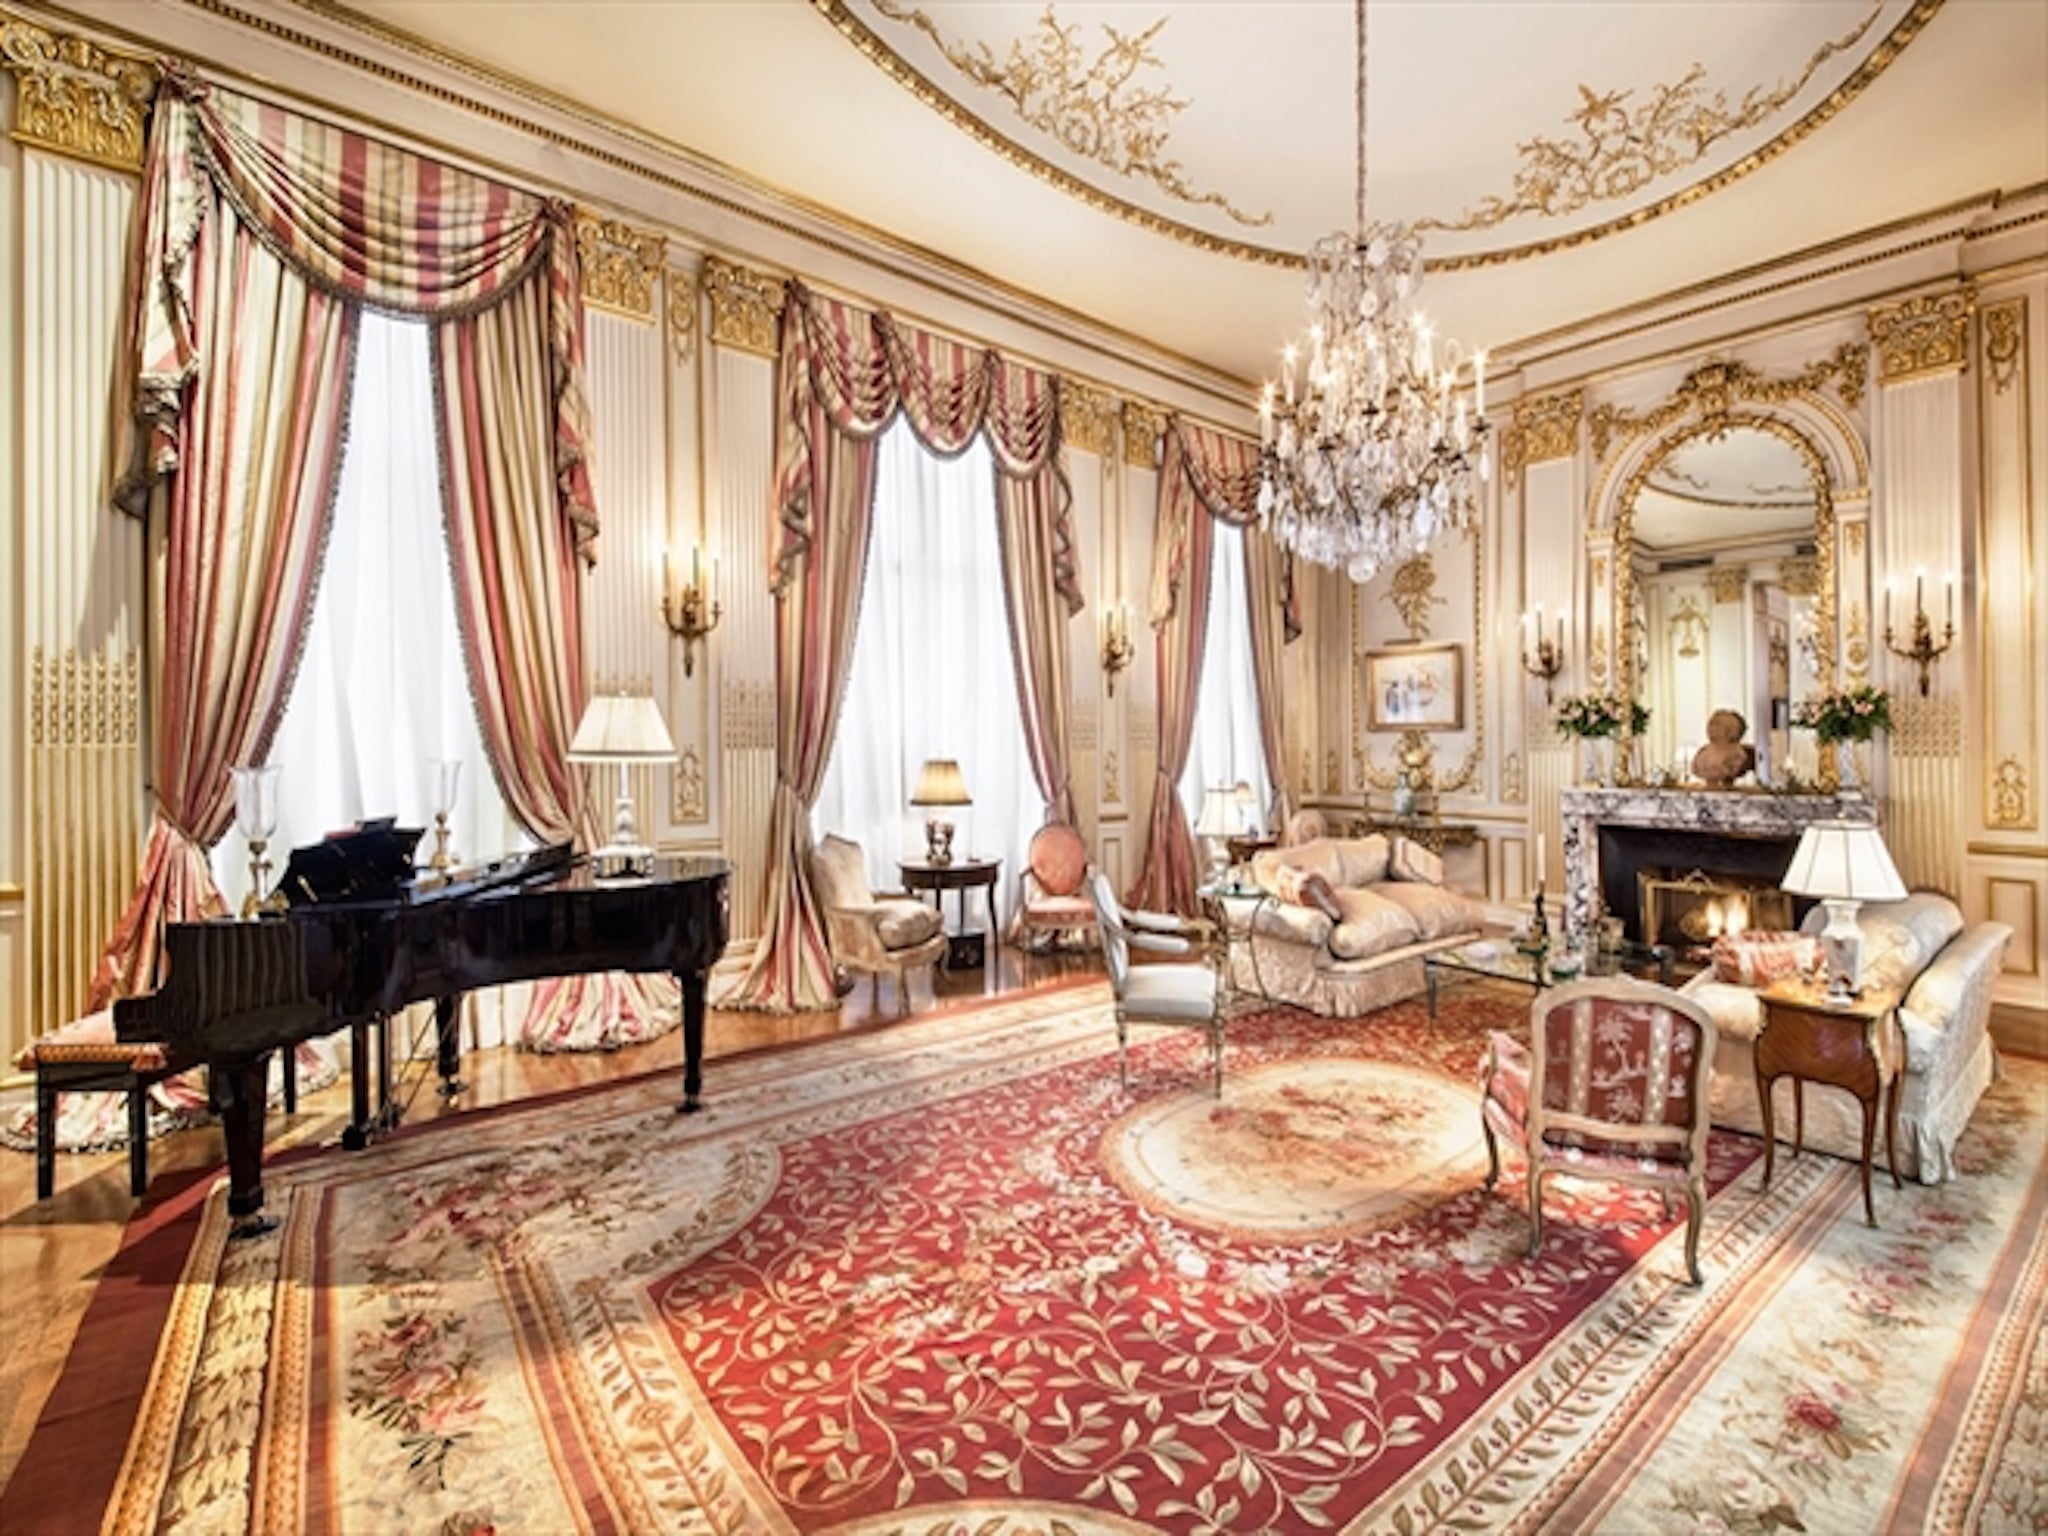 Joan Rivers Apartment Building joan rivers' new york apartment goes on sale for $28m | the